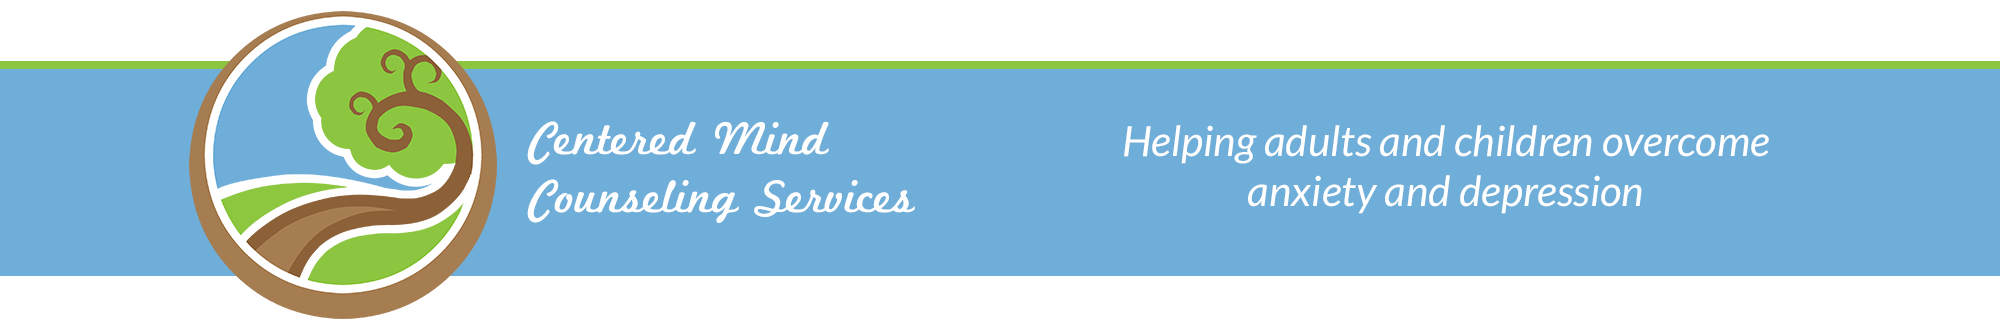 Centered Mind Counseling Services header image